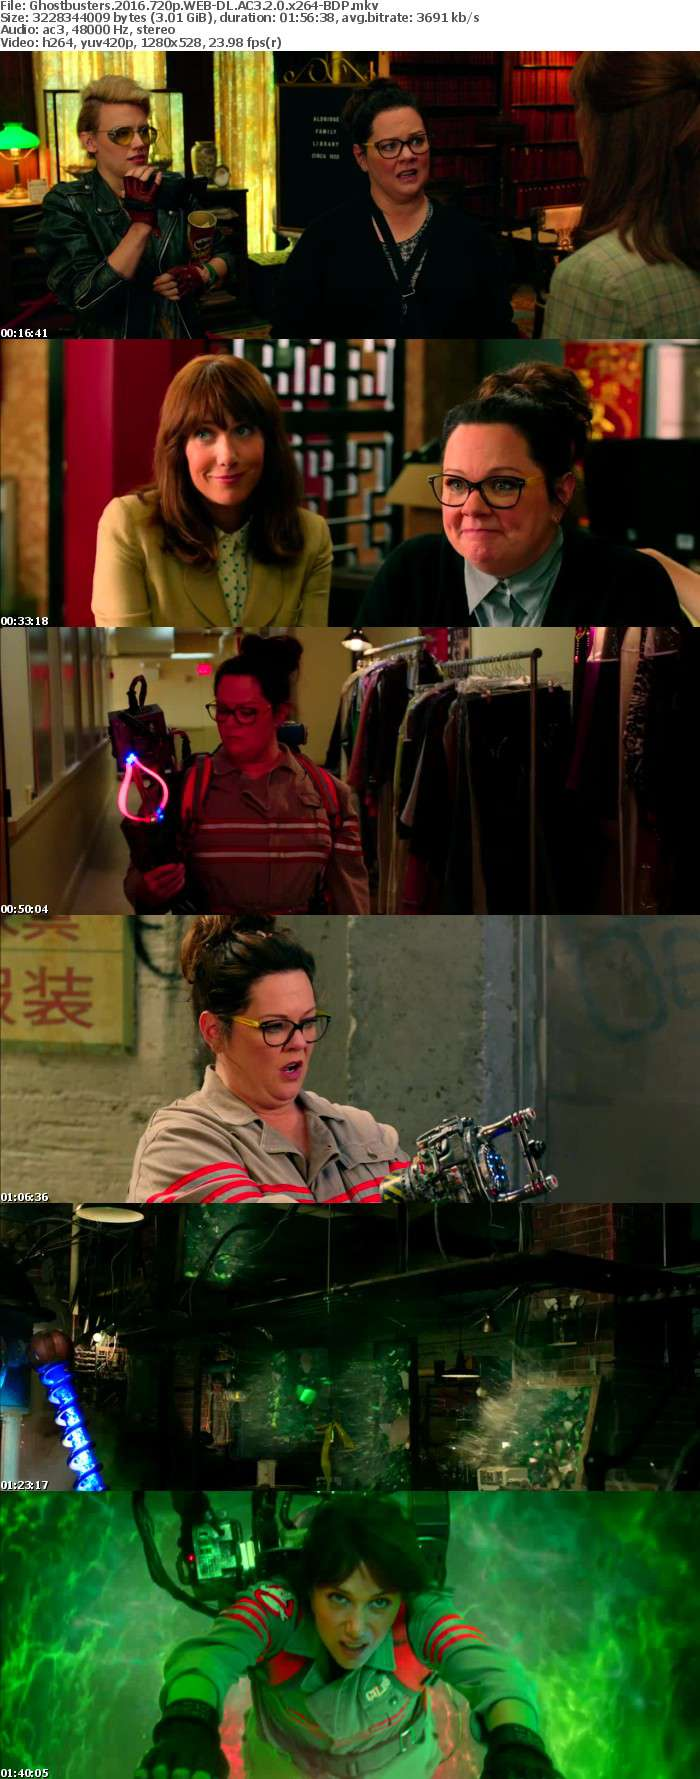 Ghostbusters 2016 720p WEB-DL AC3 2 0 x264-BDP